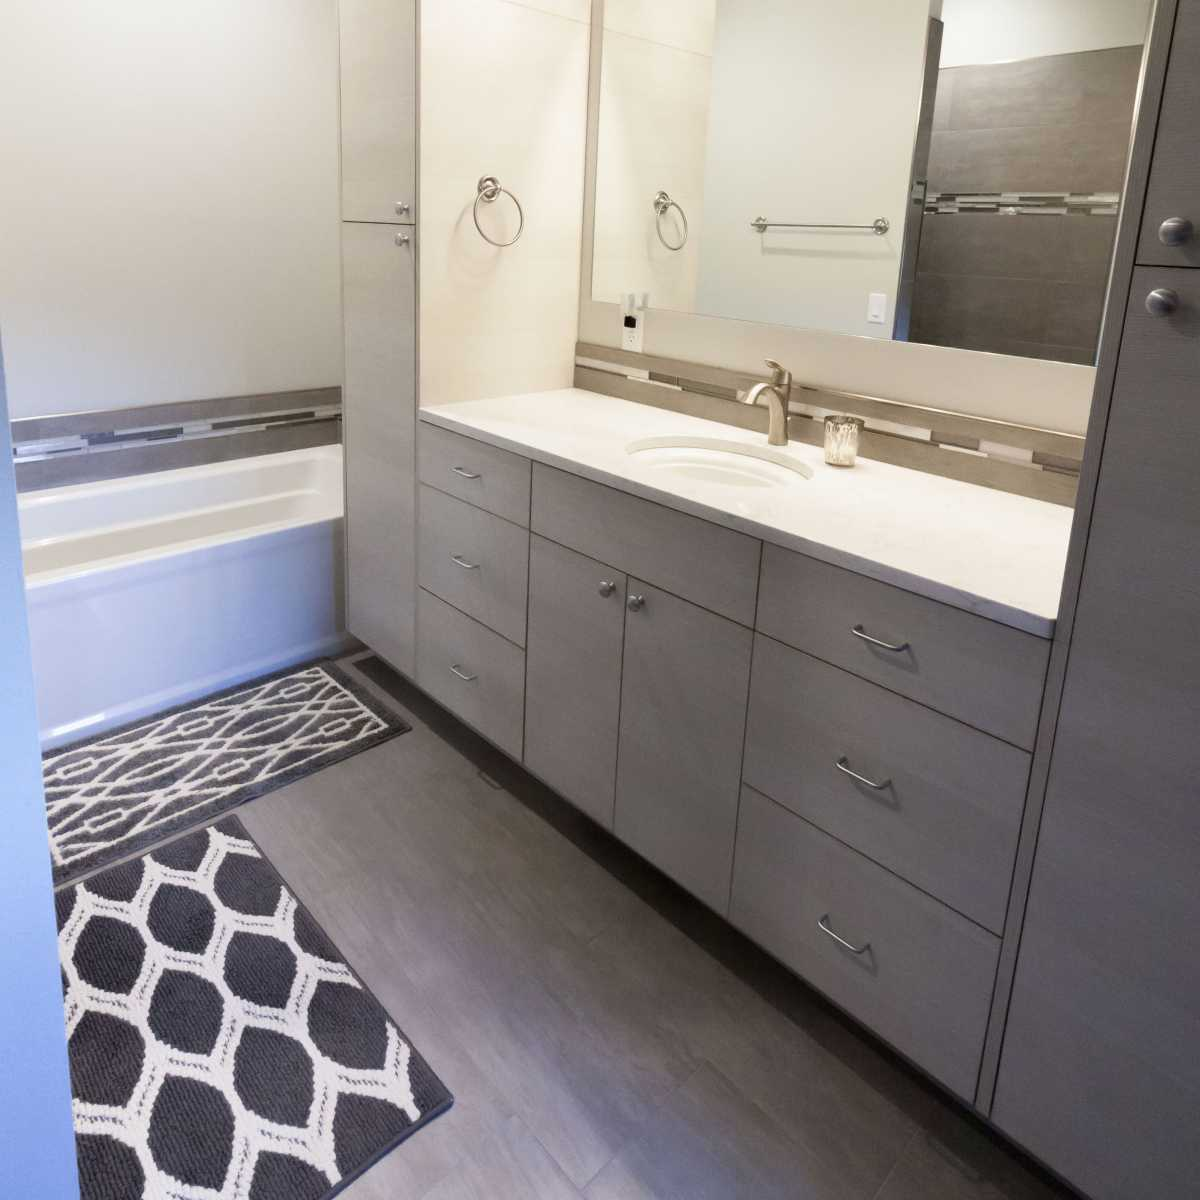 Sleek modern cabinetry for the guest bath.